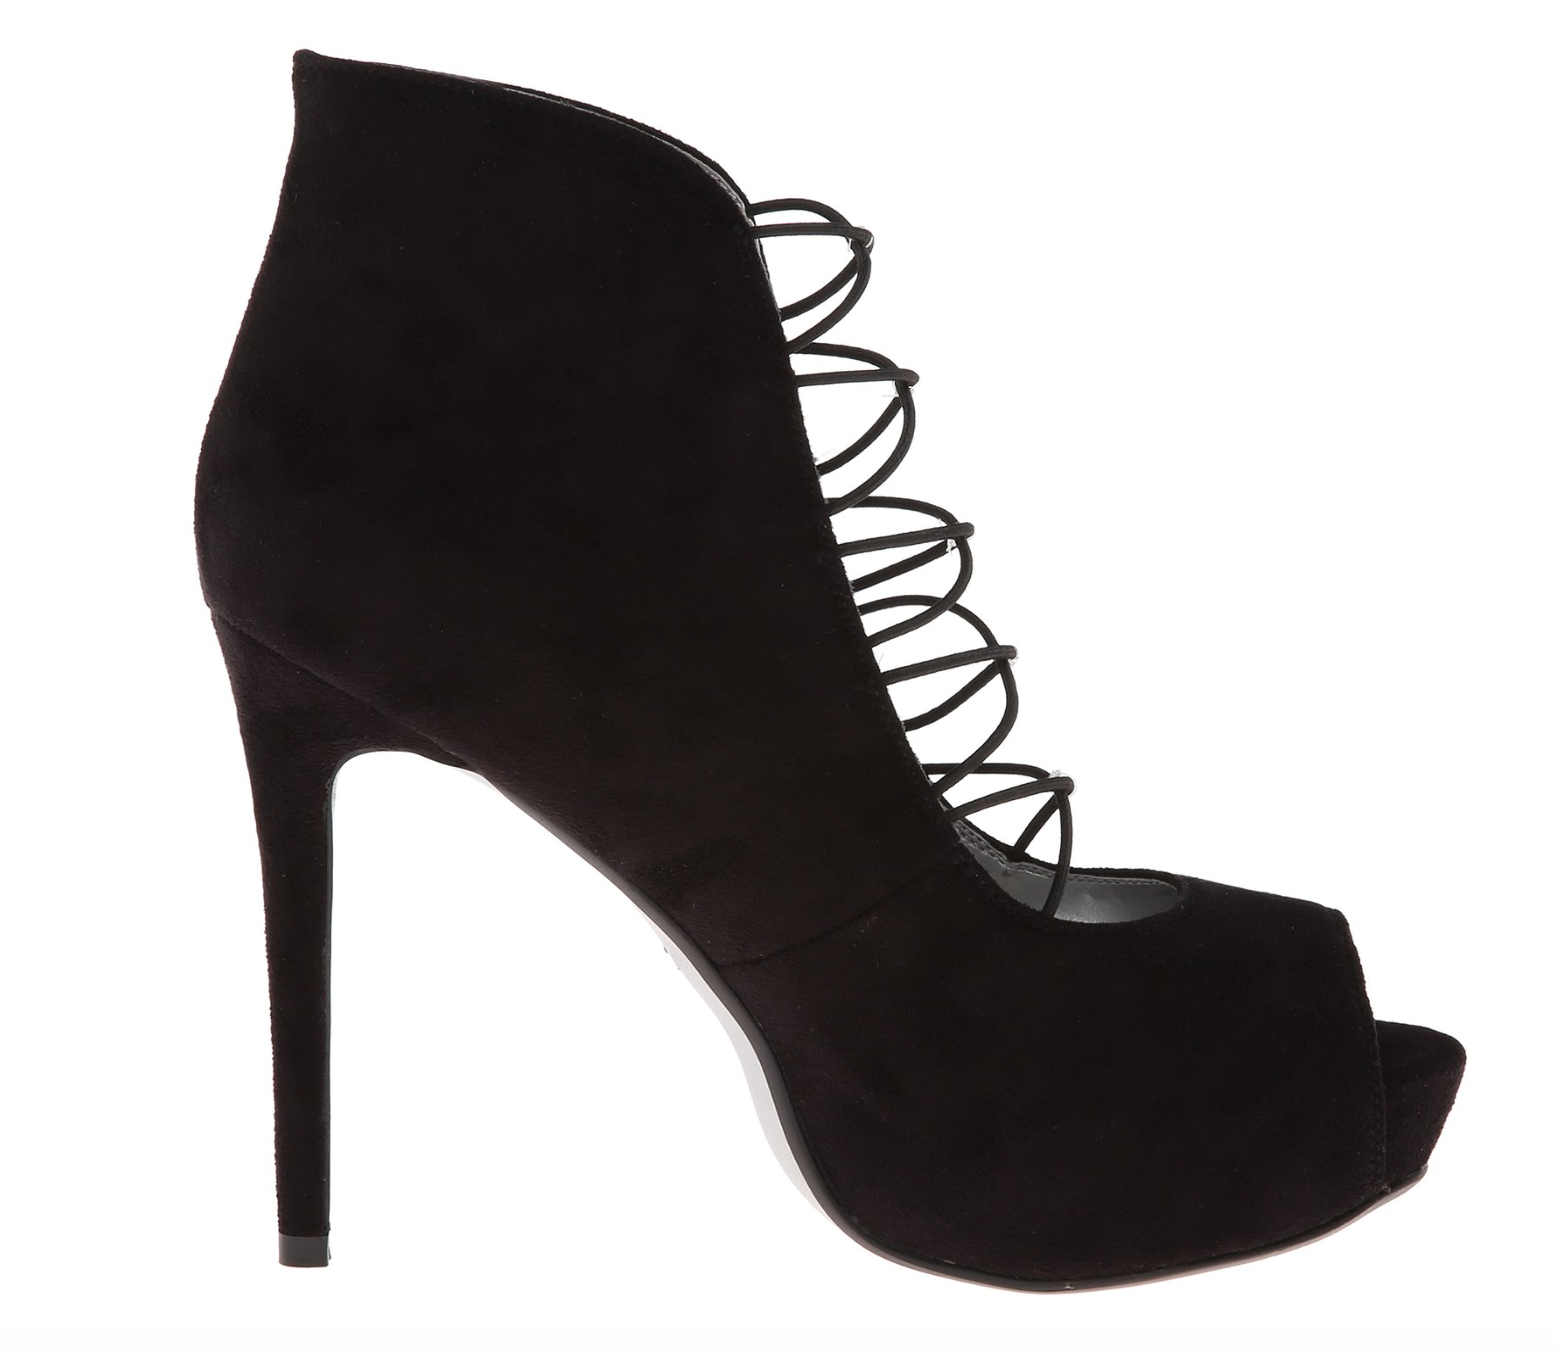 Criss Cross Black Heel